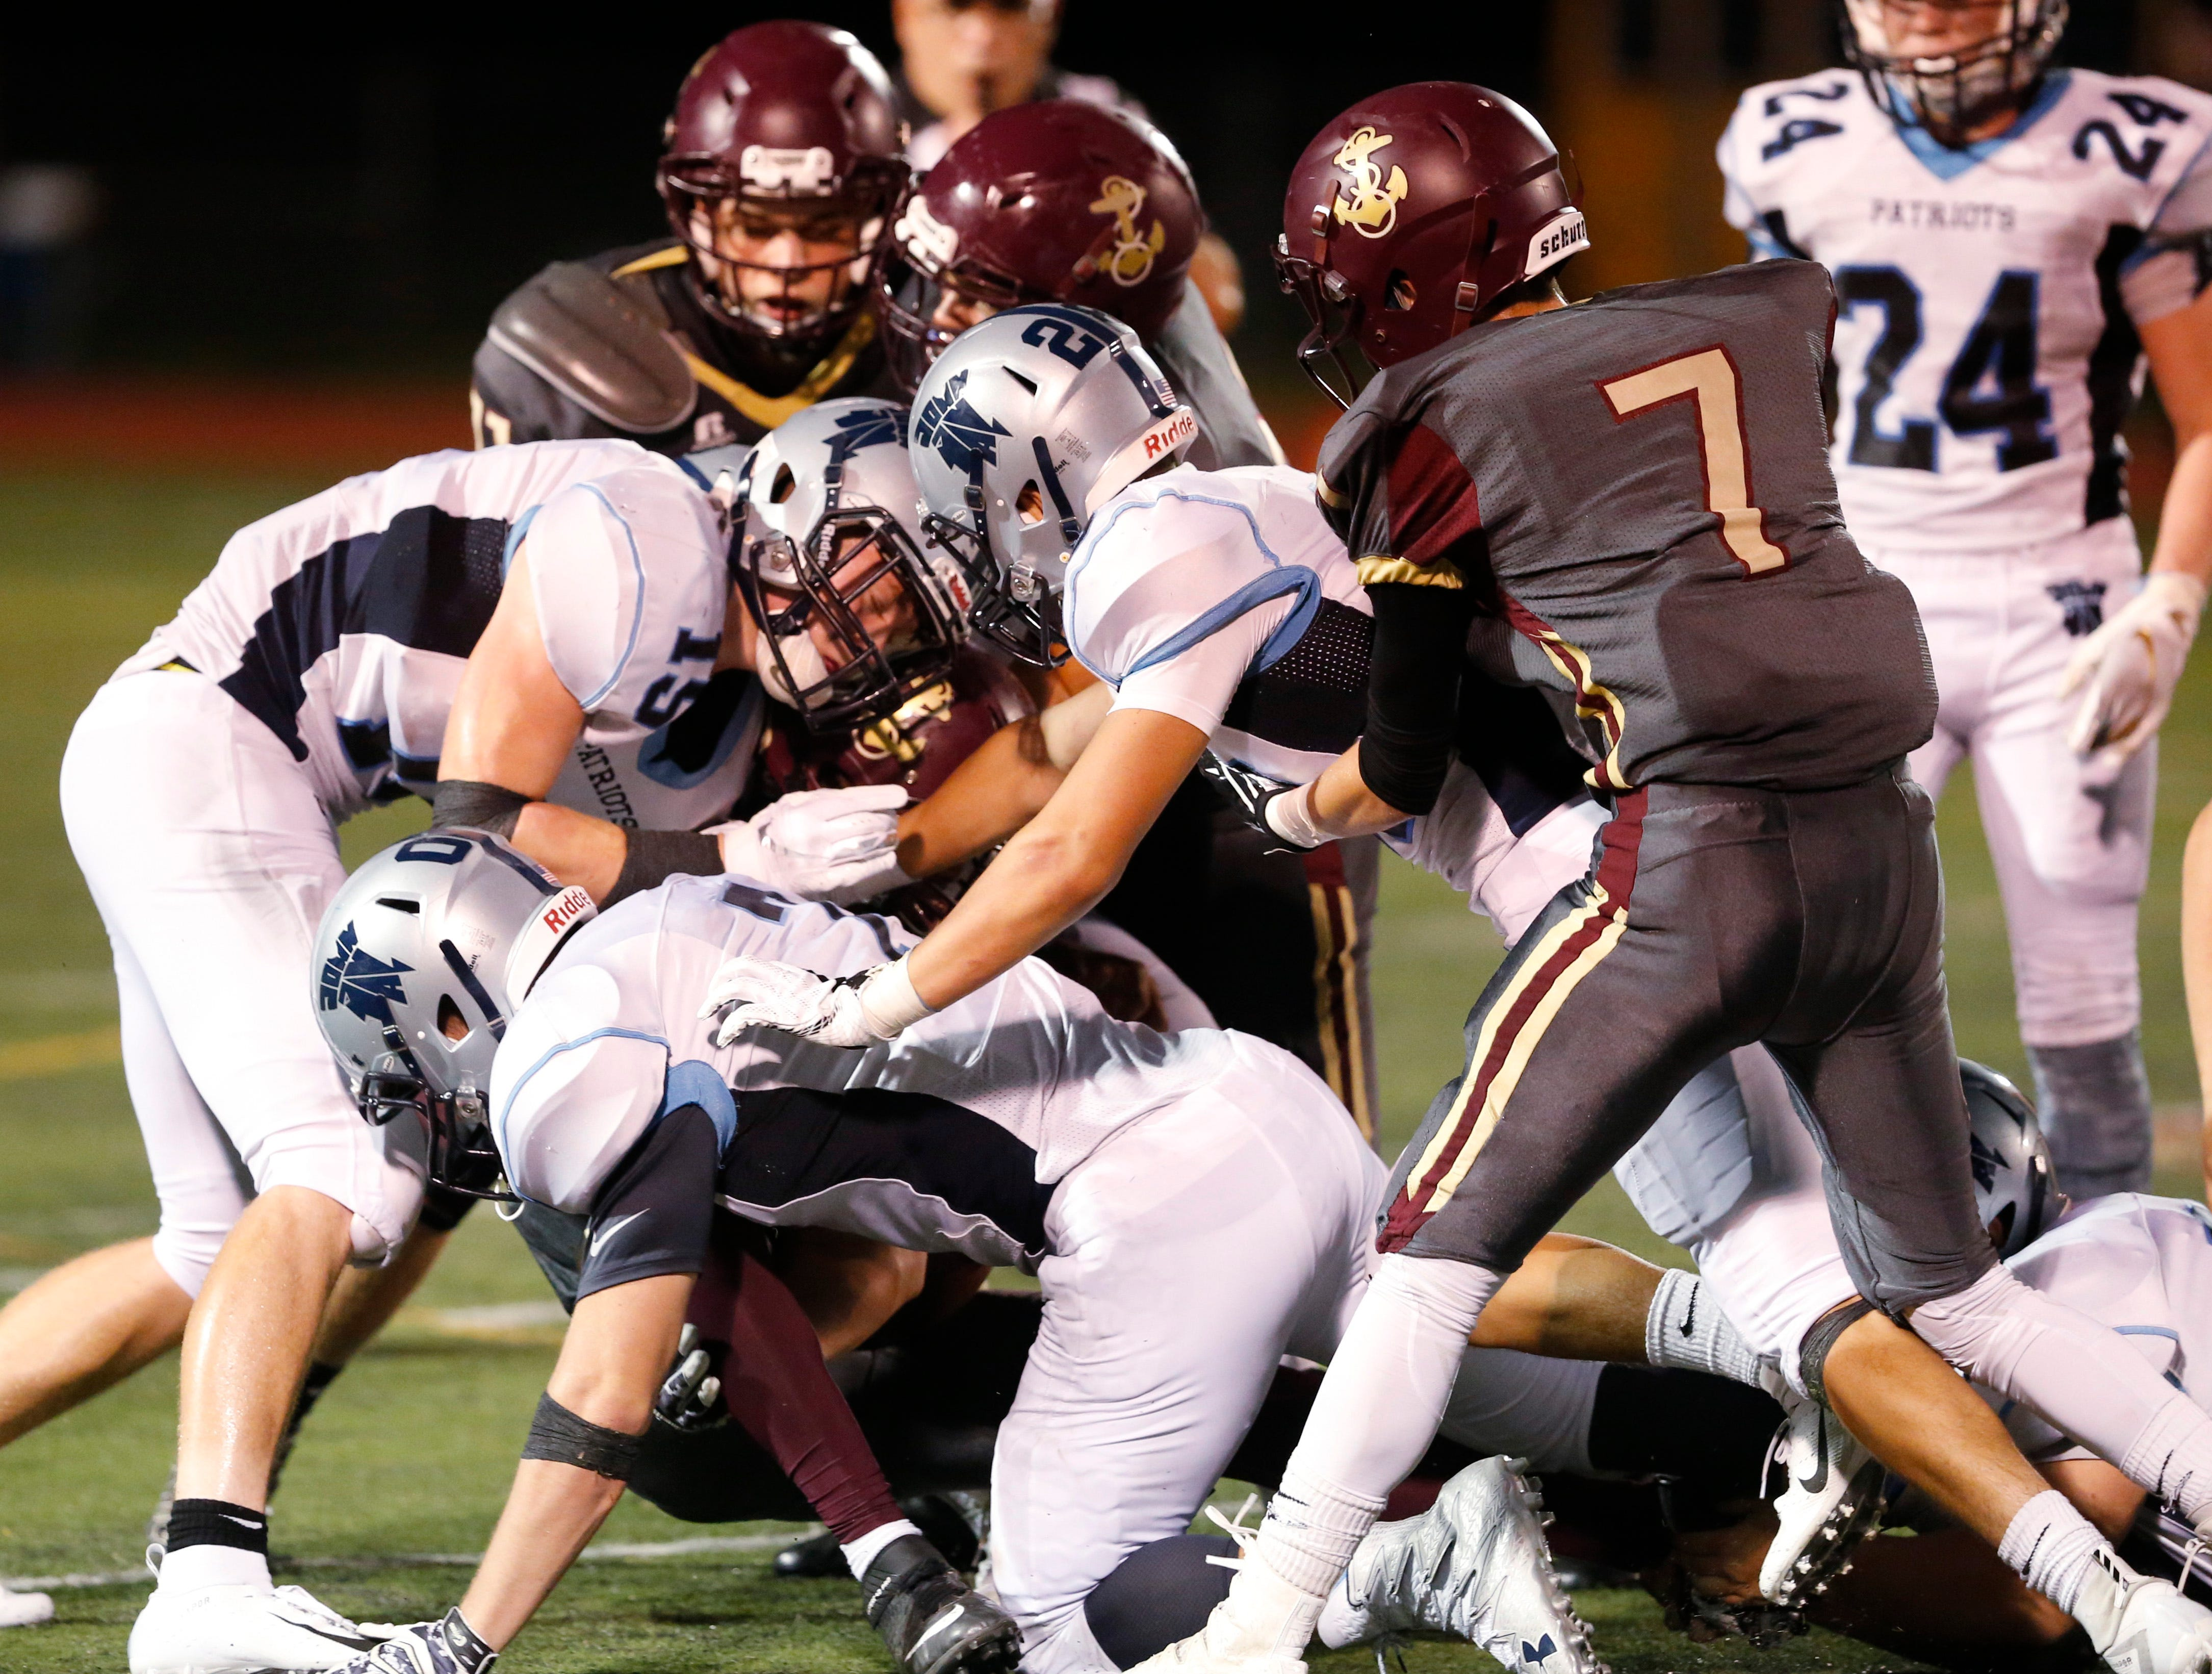 A group of John Jay defensive players converge on an Arlington ball carrier during a Sept. 14 game.